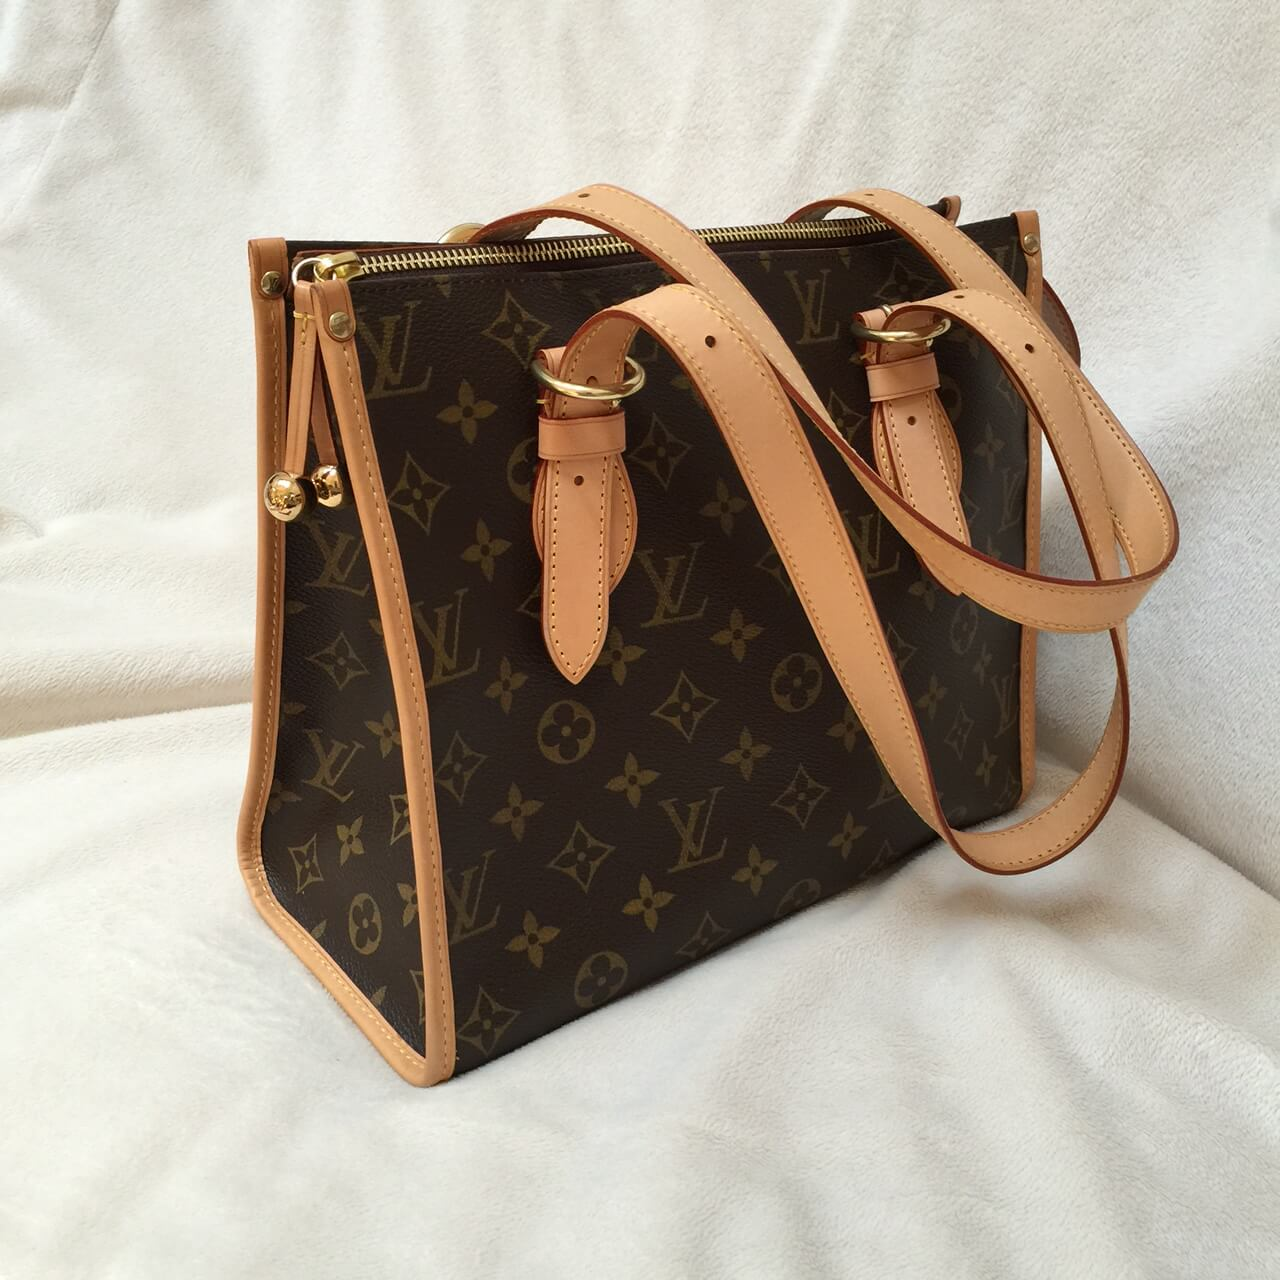 a54f3c0c376 How to Repair a Damaged Louis Vuitton Bag